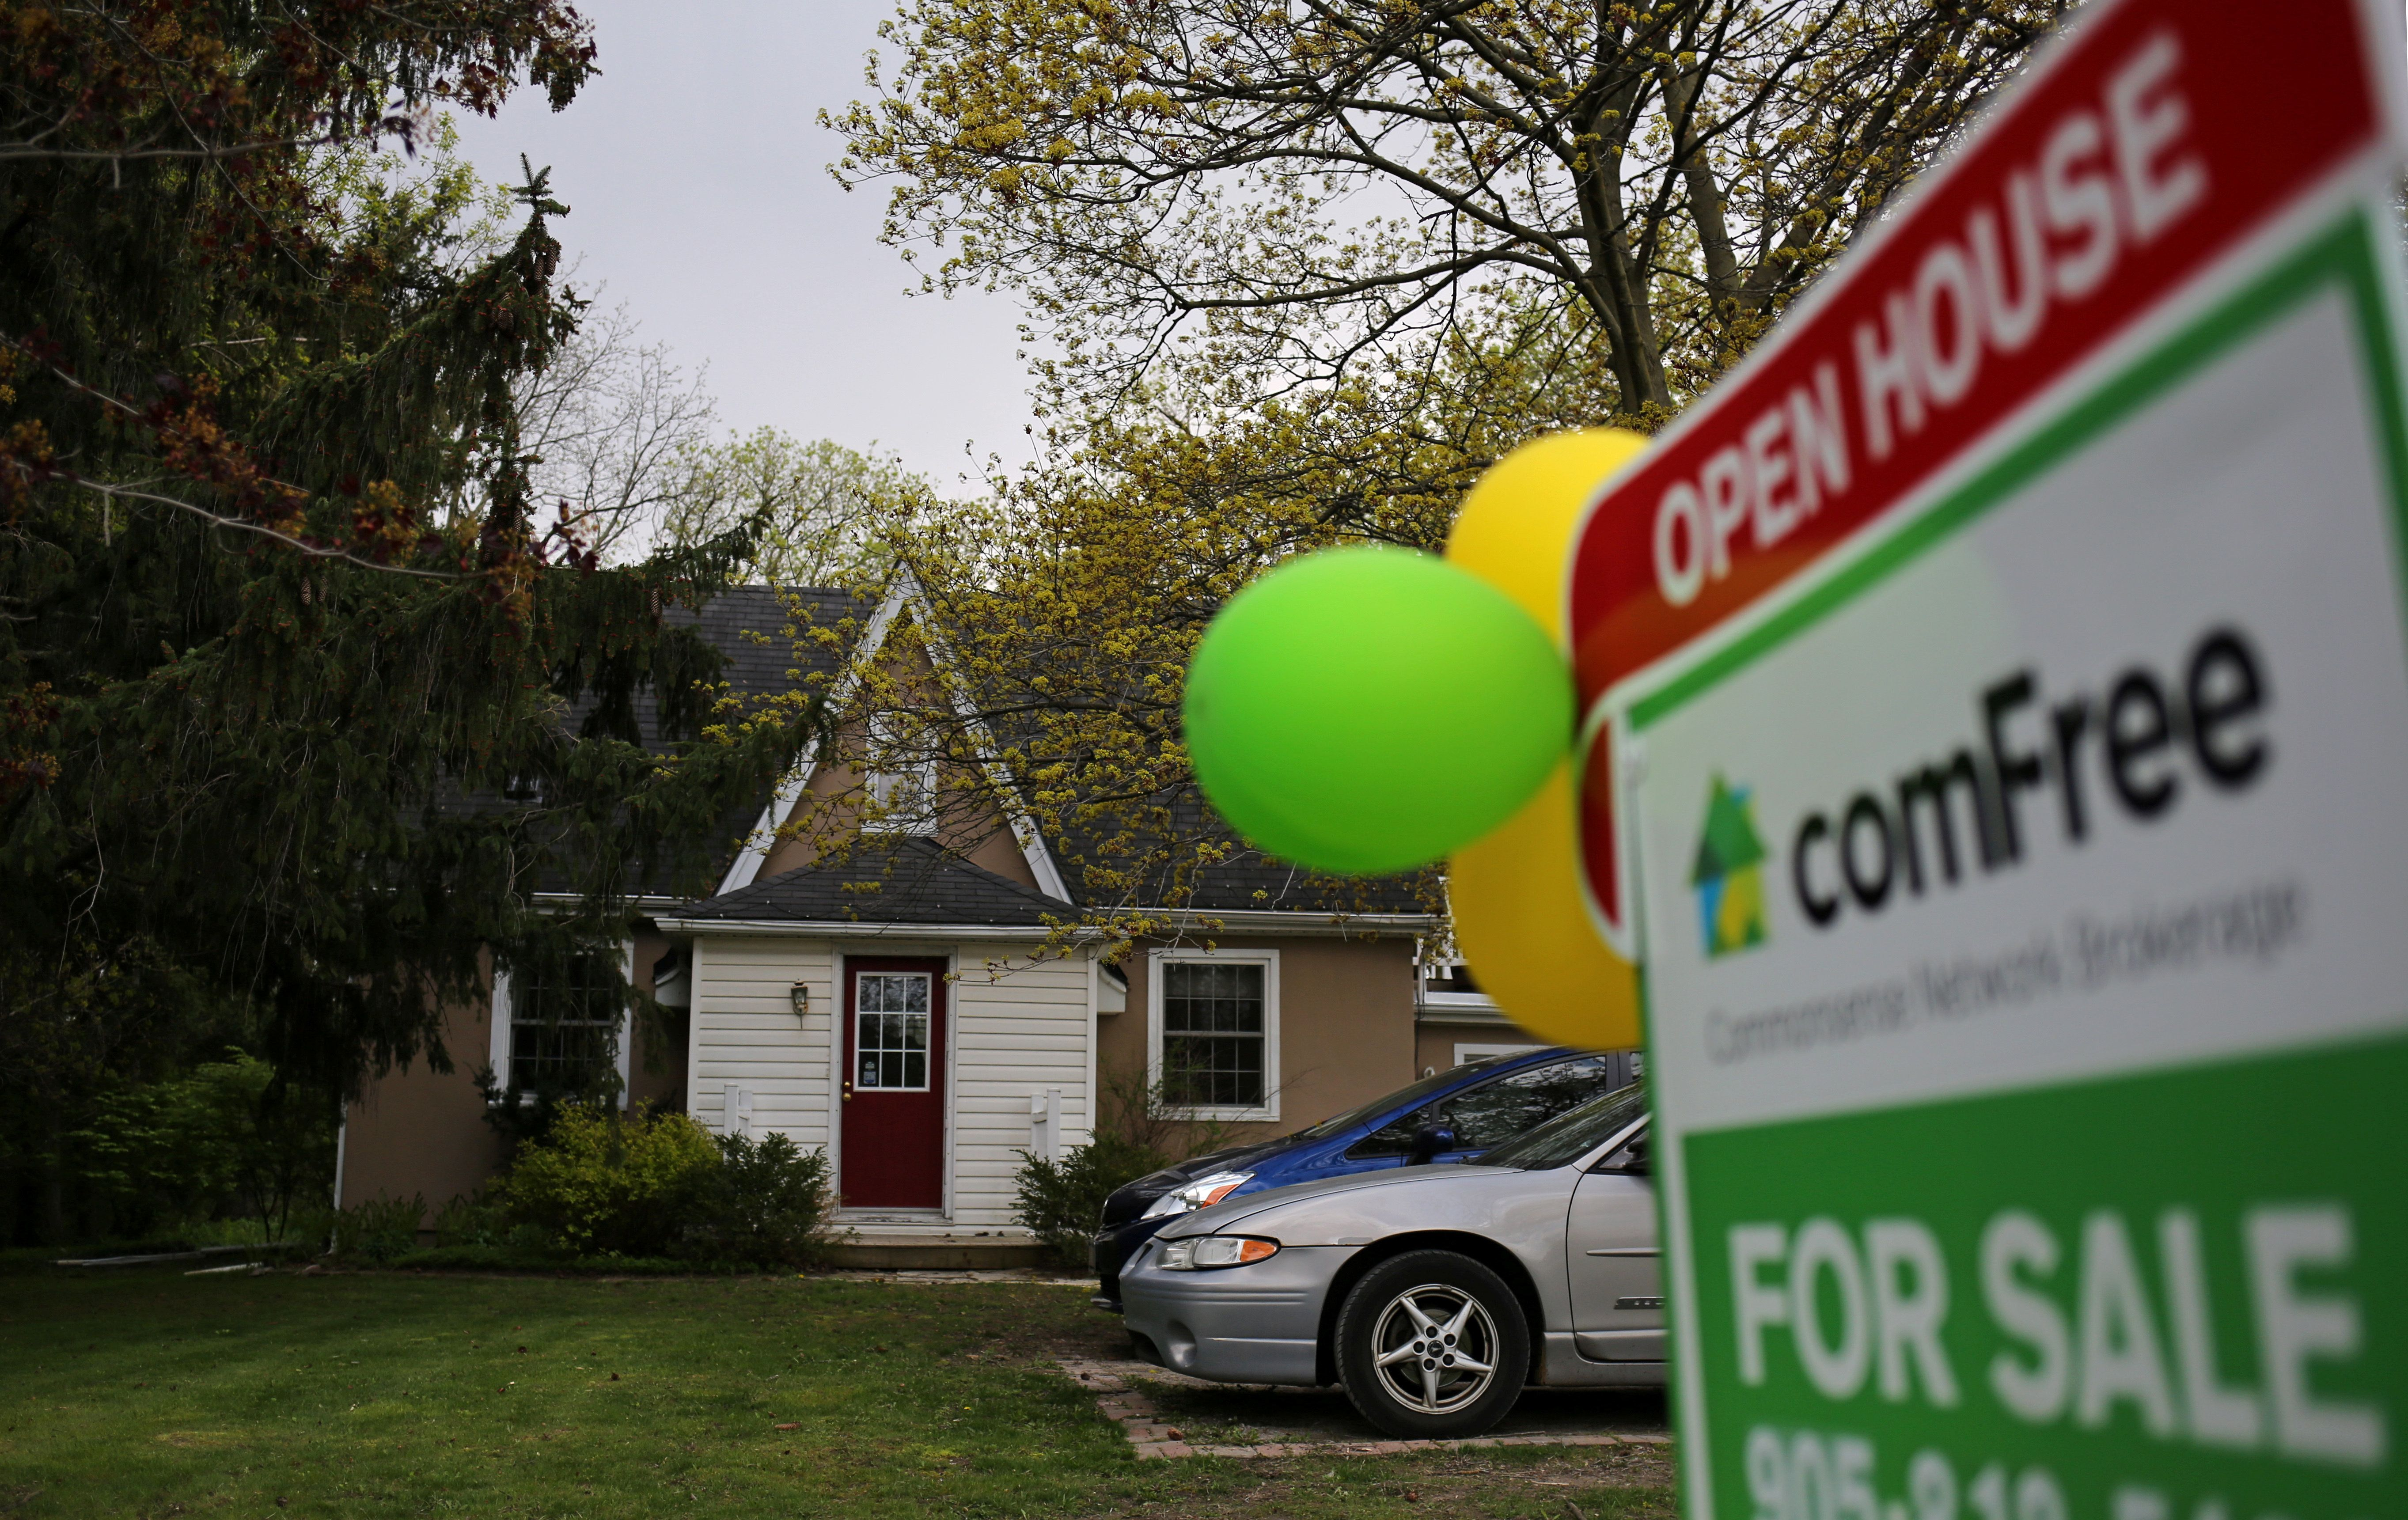 A house for sale privately by its owners is seen in Hamilton, Ontario, Canada May 13, 2017. Picture taken May 13, 2017. REUTERS/Chris Helgren